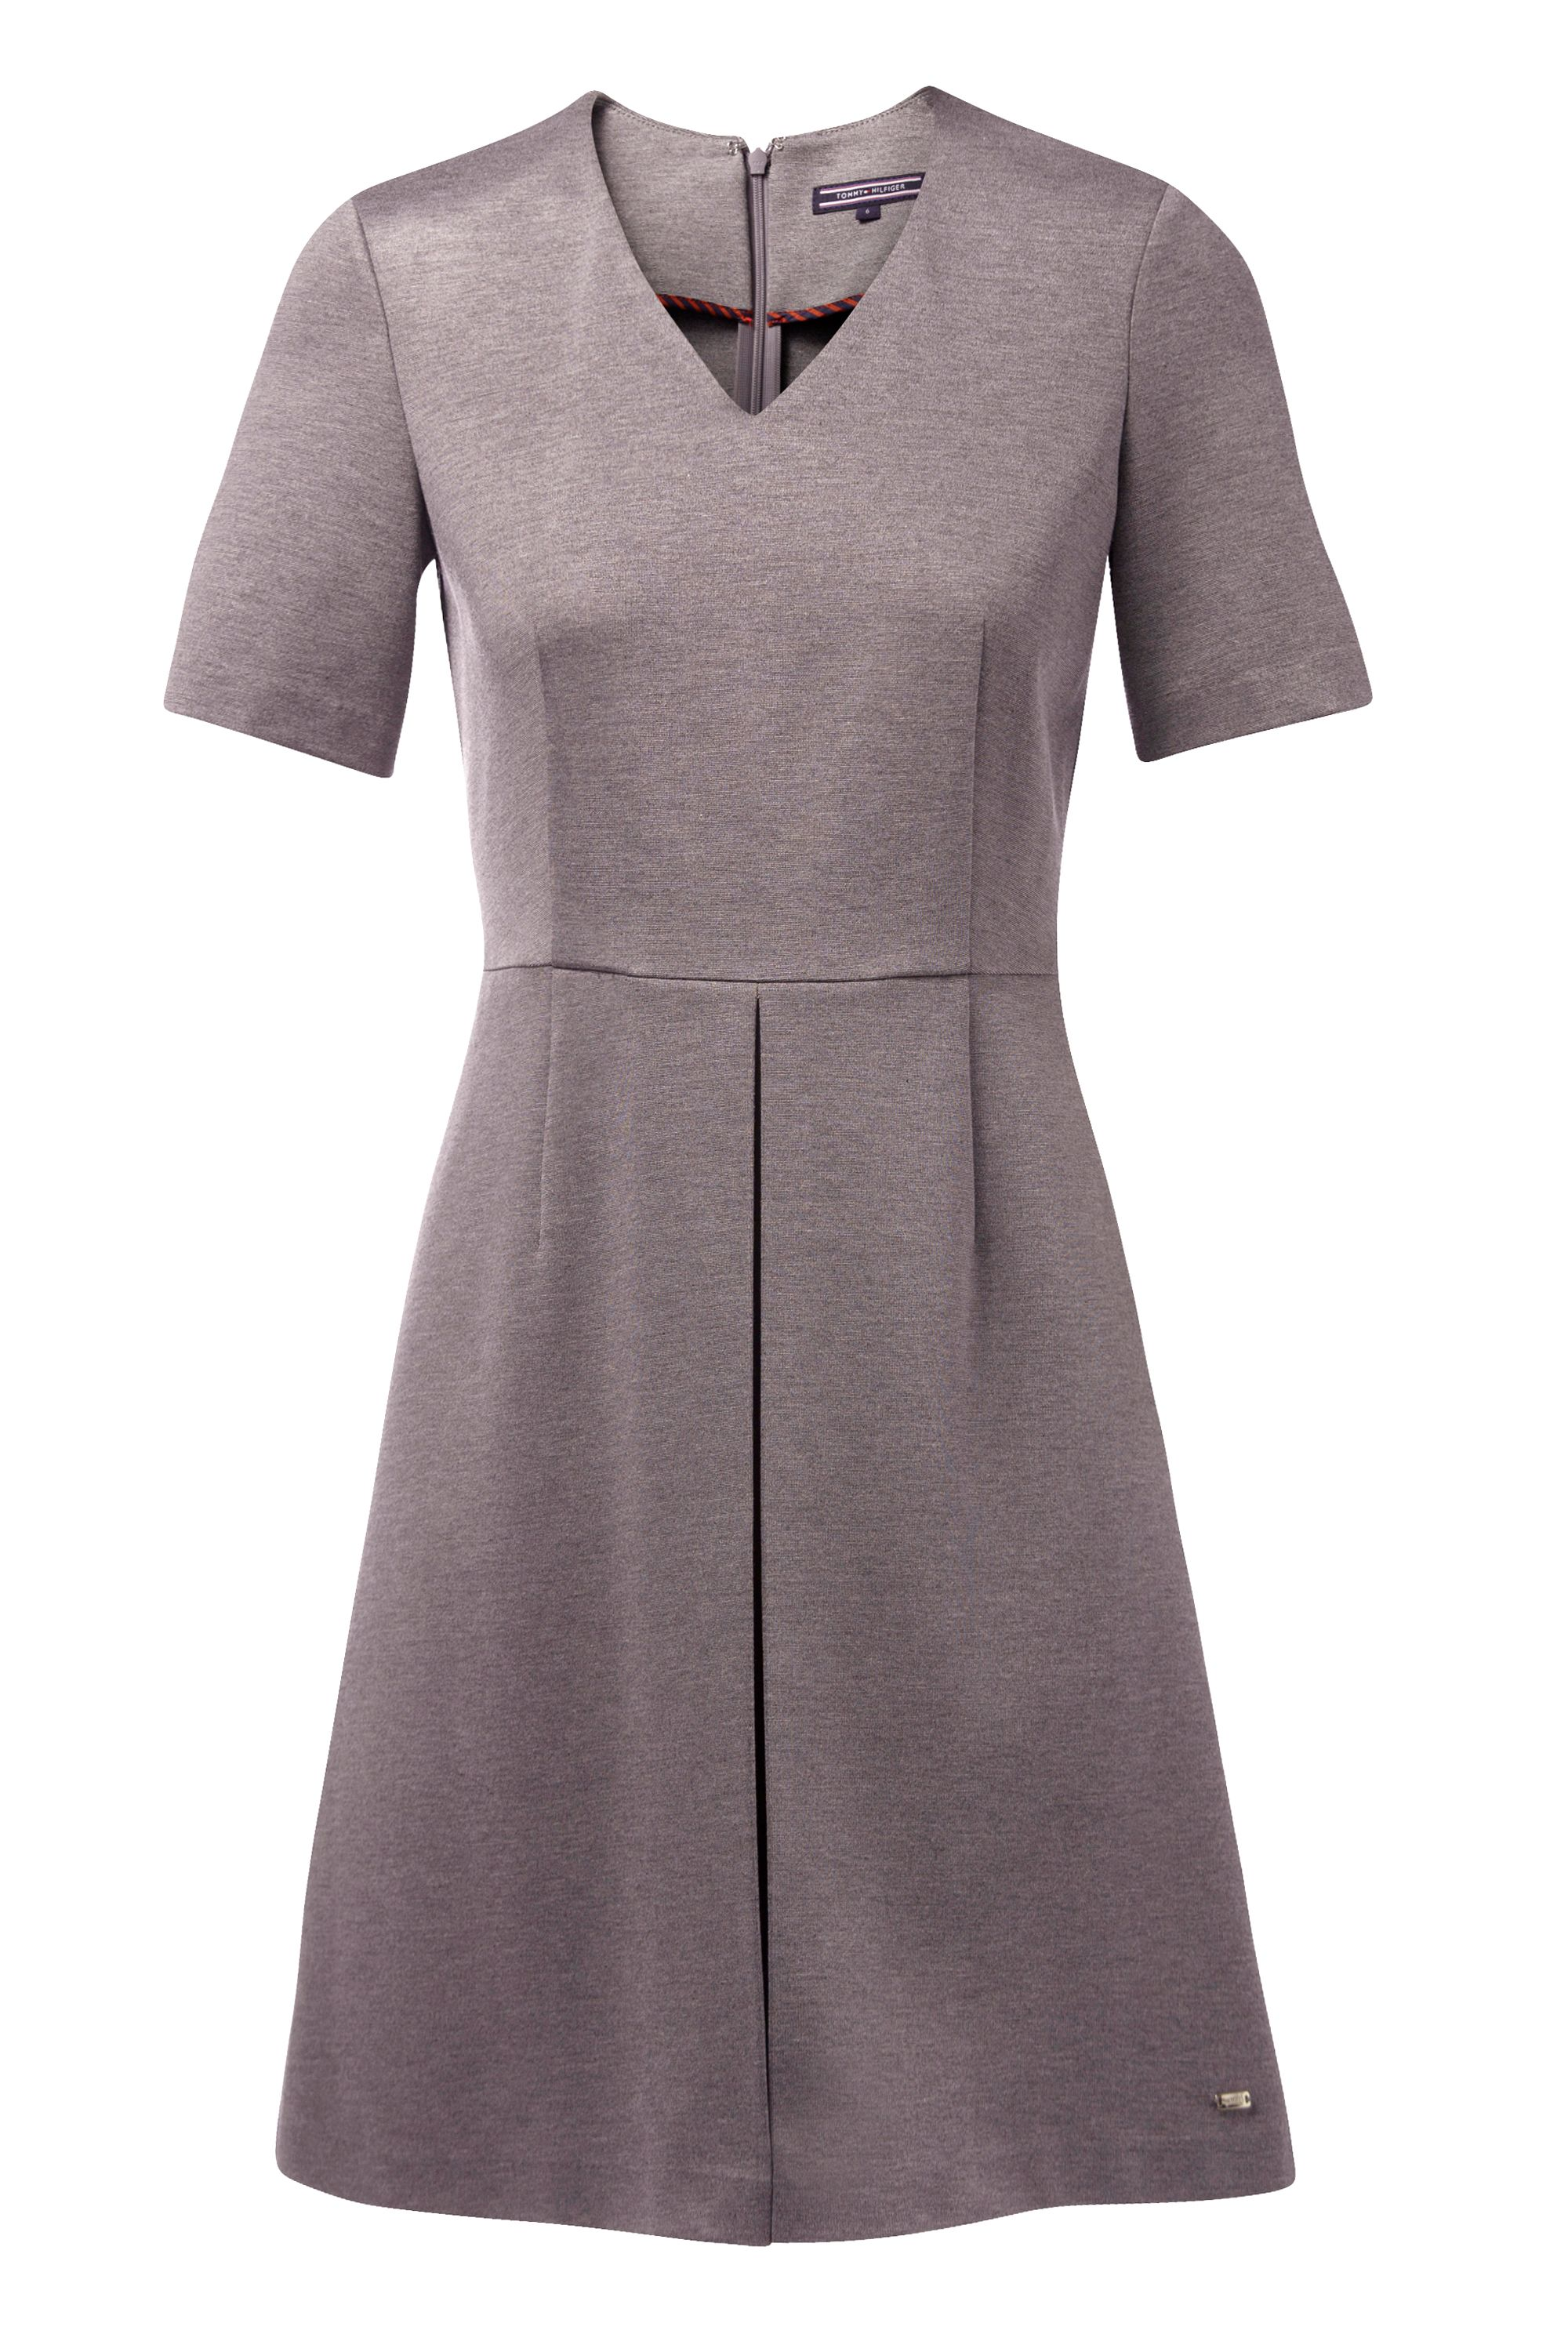 Tommy Hilfiger Imogen Dress, Grey